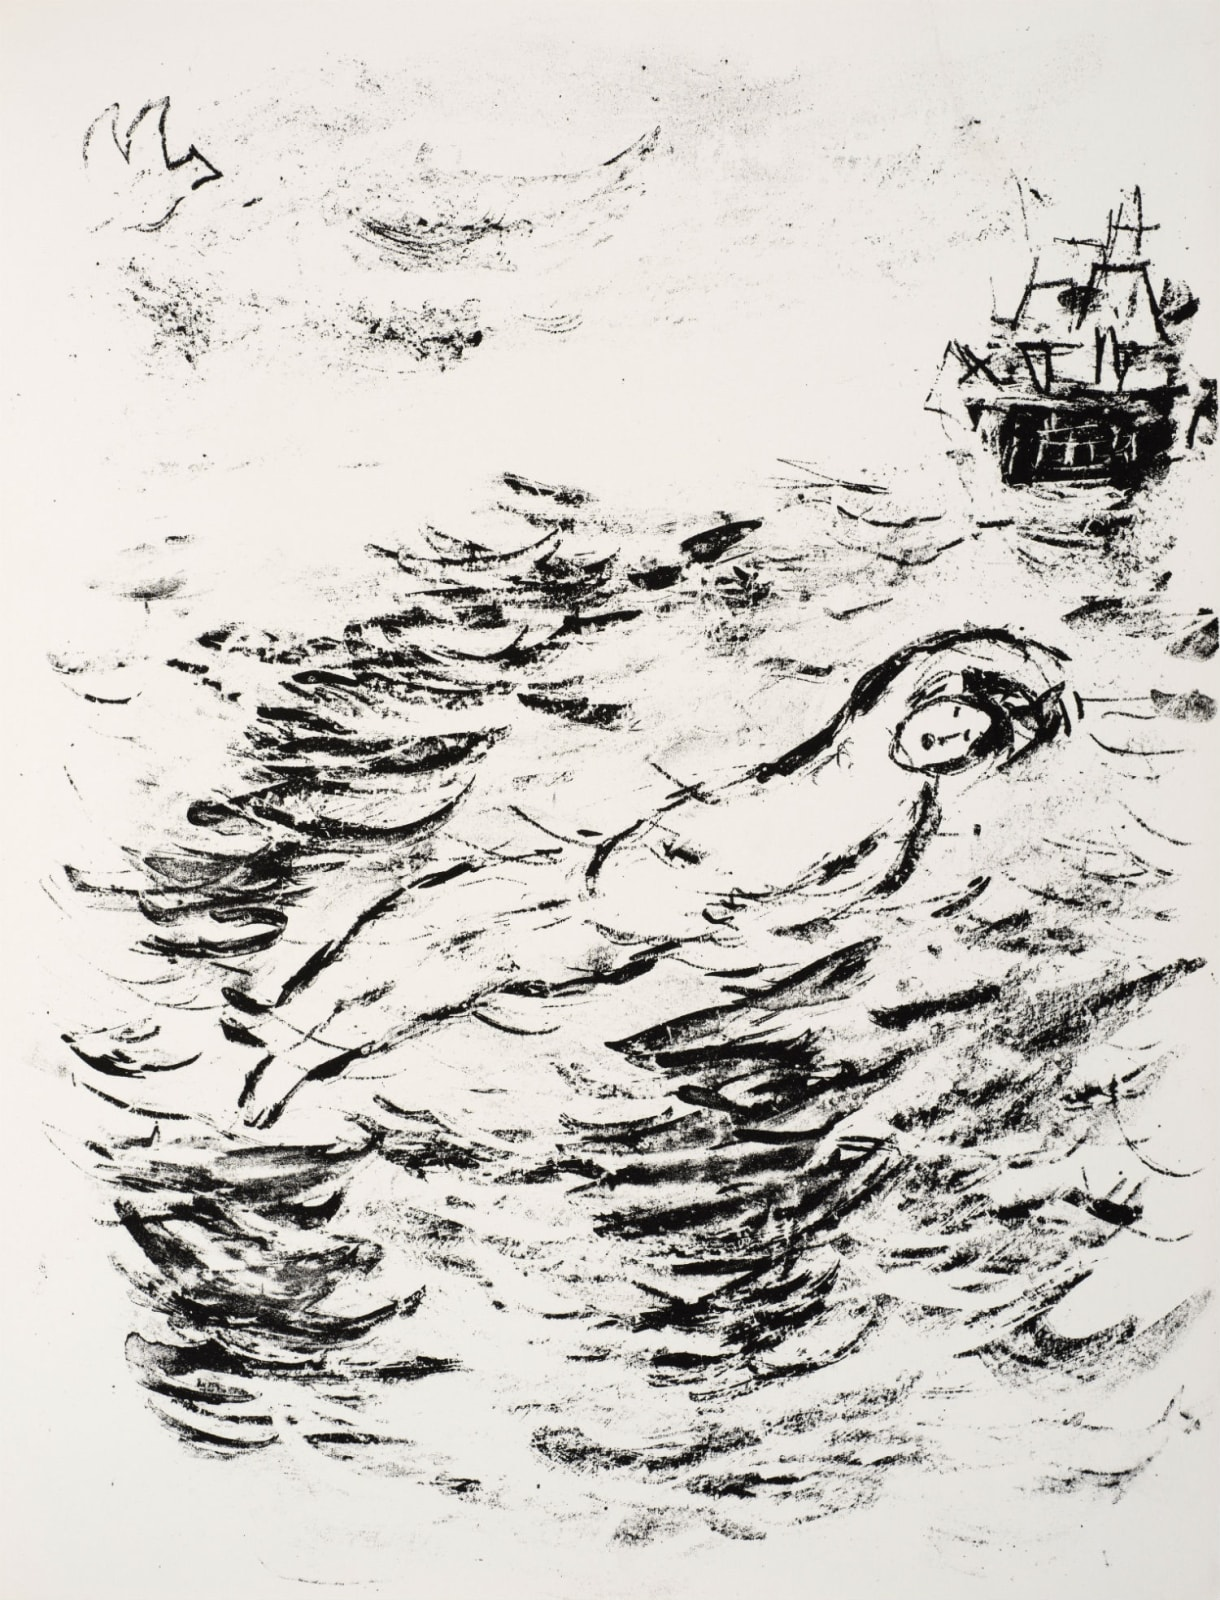 Marc Chagall (1887-1985) Ferdinand's supposed drowning, as imagined by his Father (Series: Shakespeare The Tempest) 1975 Lithograph 42.5 x 32.5 cm Ben Uri Collection © Marc Chagall estate To see and discover more about this artist click here